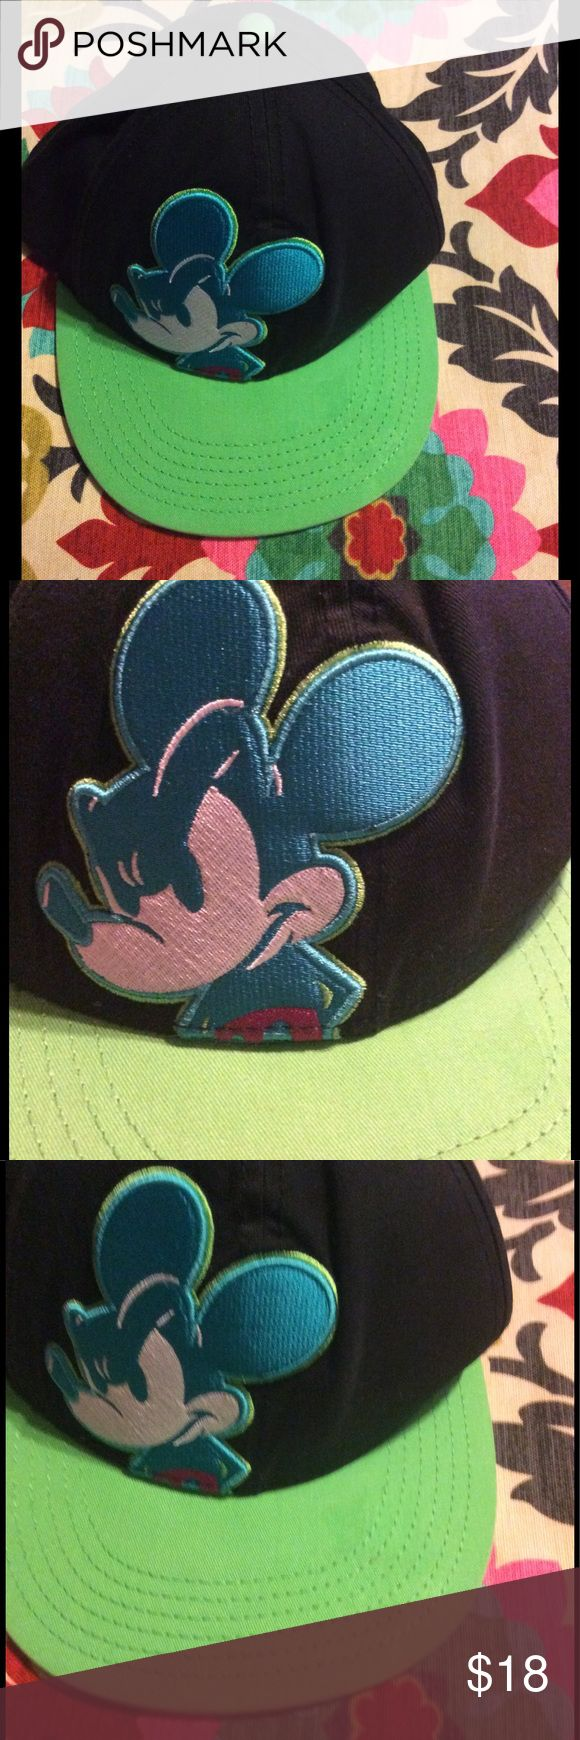 Disney SnapBack flat bill hat neon Mickey Disney SnapBack neon Mickey flat bill hat. New without tags. There is a tiny bit of sticker residue as shown in close up picture. You can barely see it. Bill is flat has not been shaped or bent. Colors are neon green and blue on a black background. Disney Accessories Hats